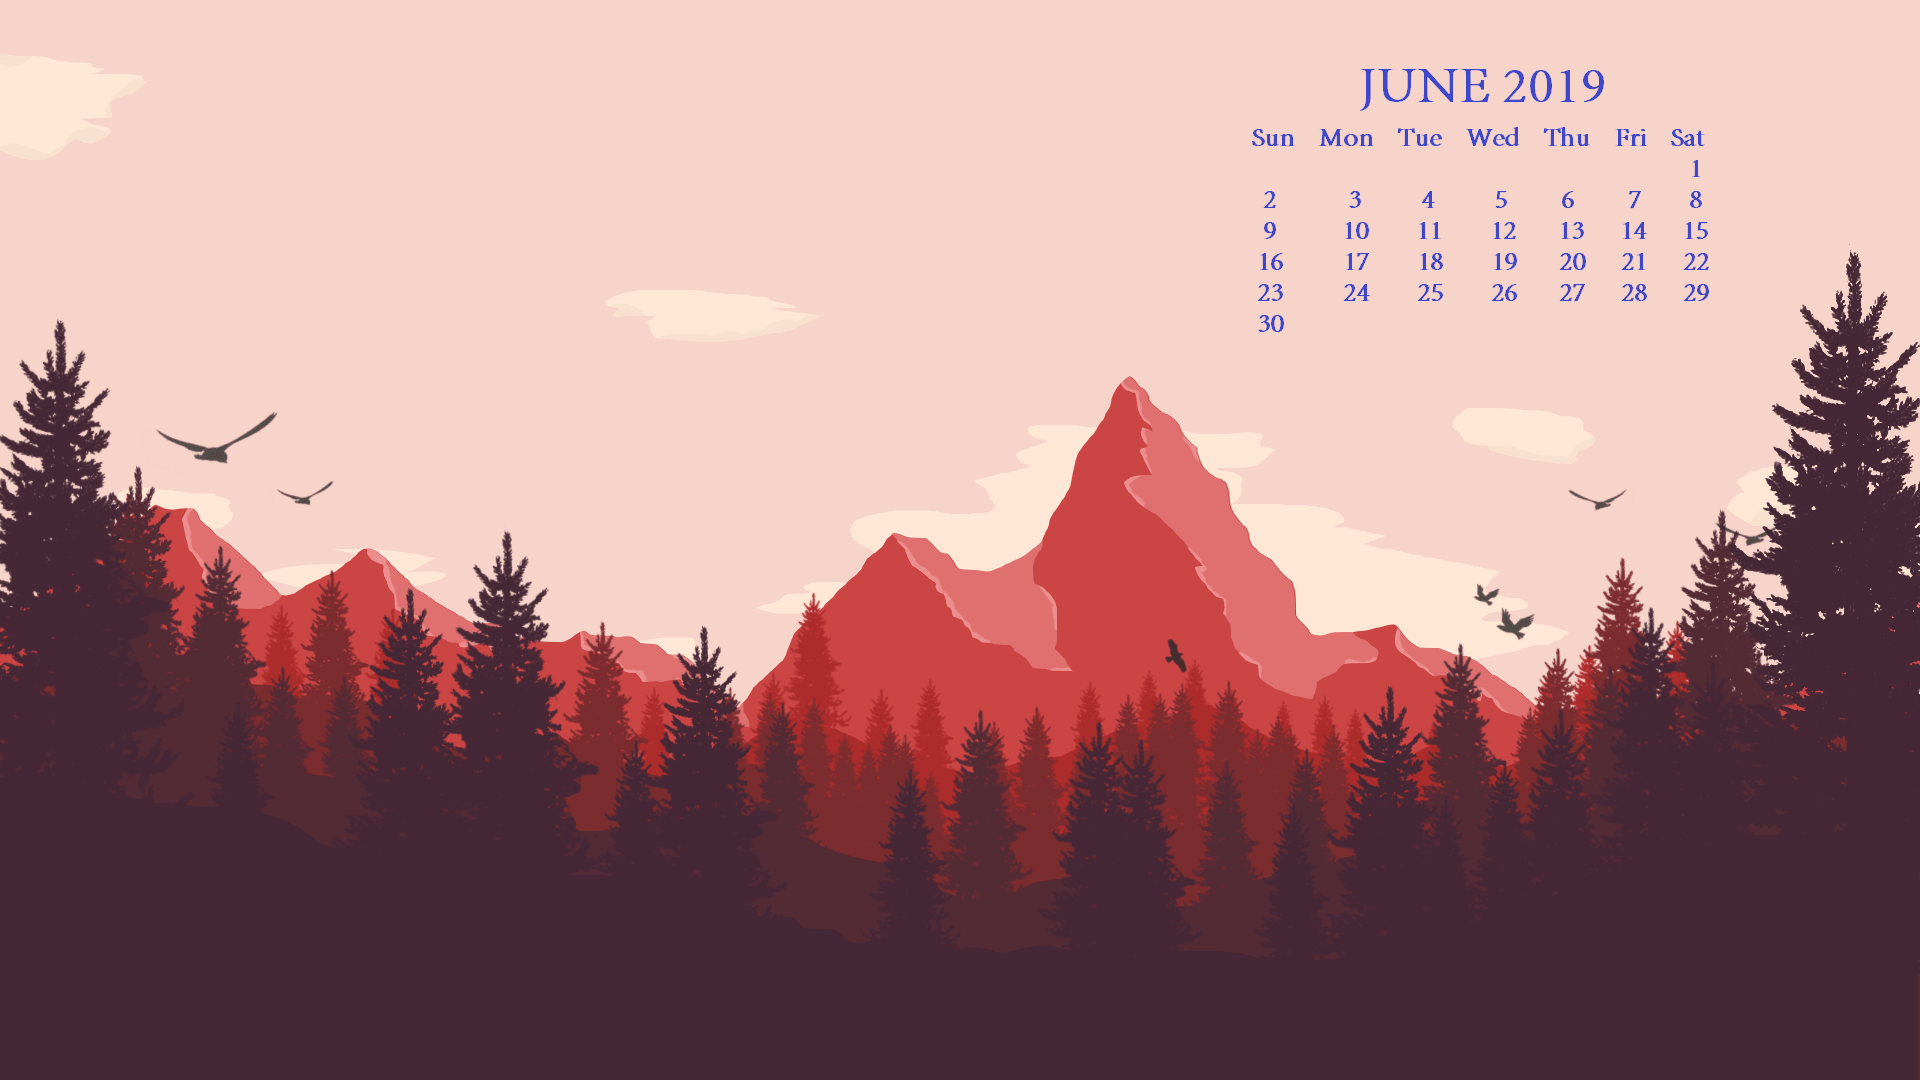 June 2019 HD Desktop Calendar Wallpaper